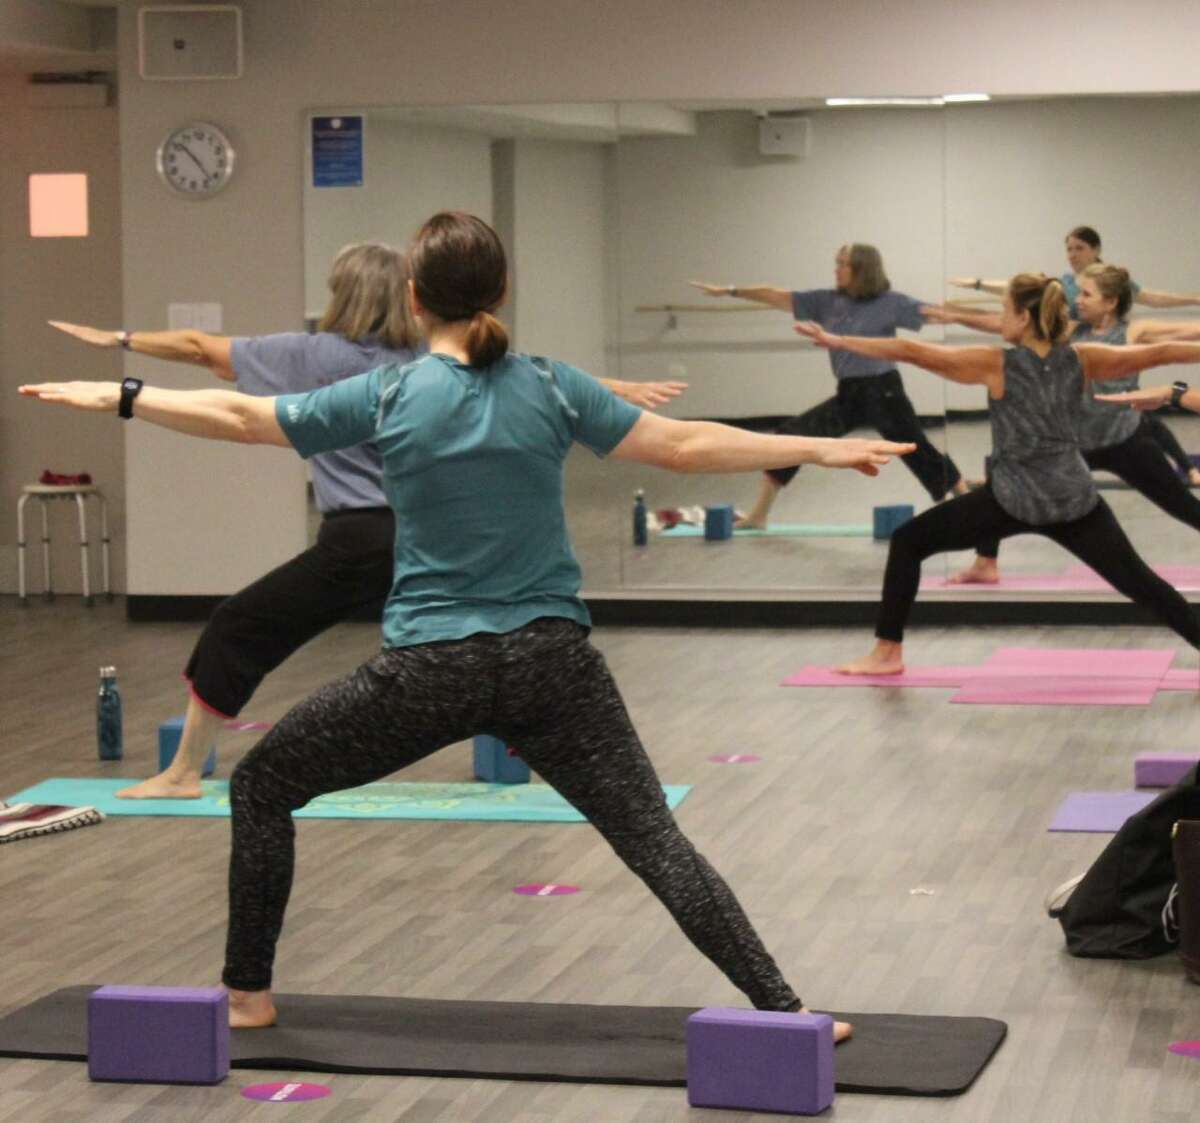 Fall registration for the New Canaan YMCA's variety of classes, programs, and activities for all ages is beginning on Monday, August 9. Pictured is a previous class at the non-profit organization in the town.